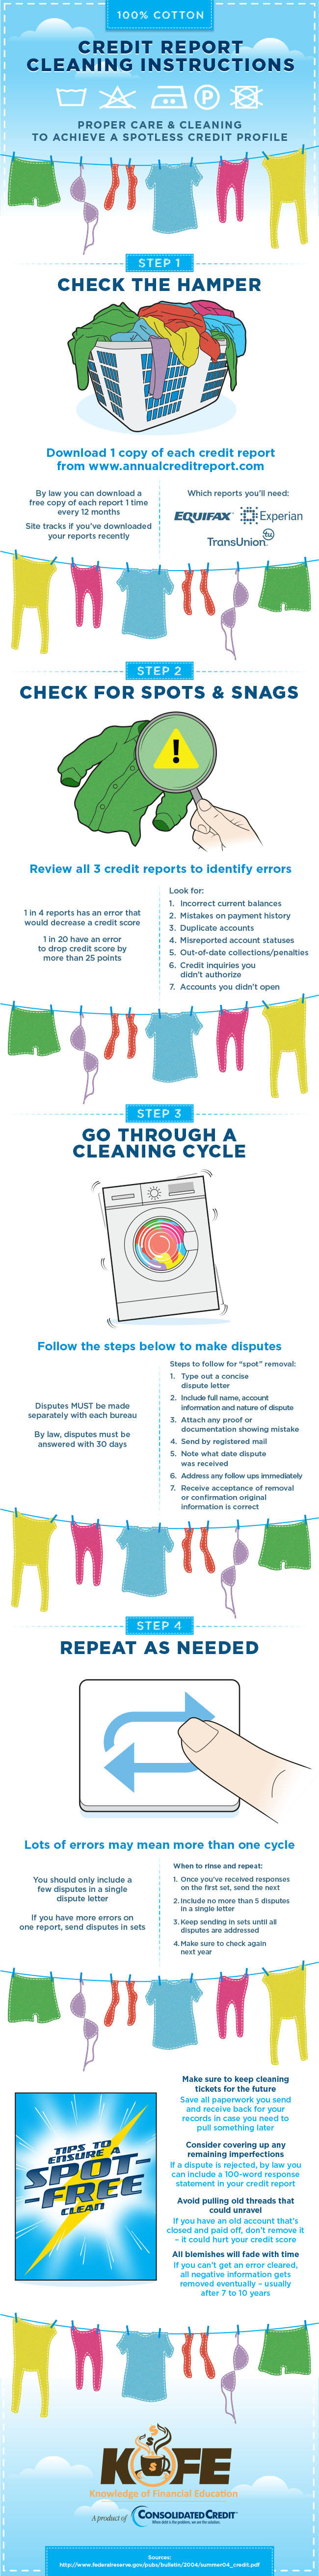 Credit Report Cleaning Instructions infographic